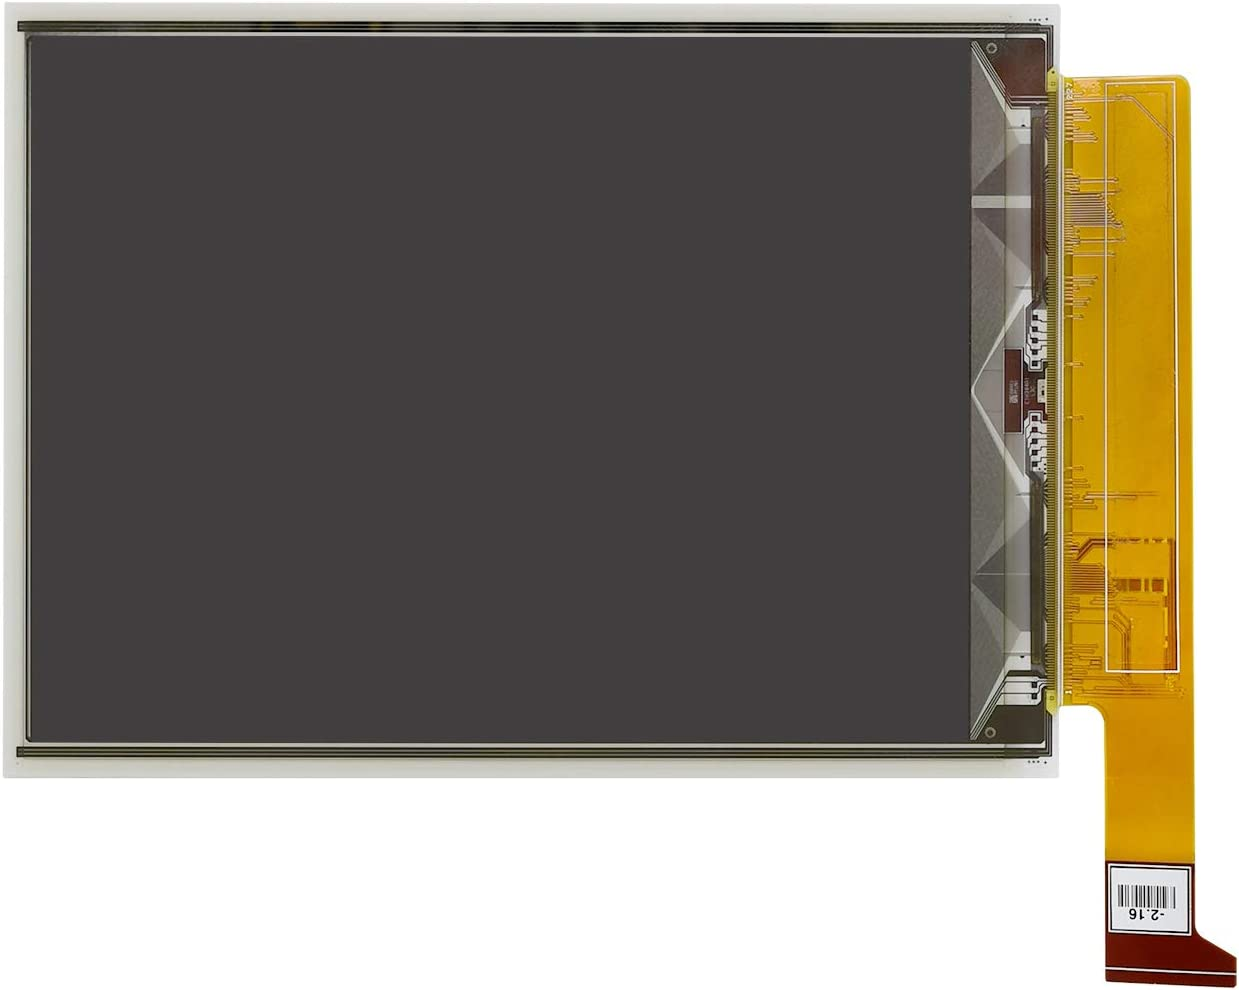 Waveshare 6inch E-Ink Raw Display with 1448/×1072 High Definition Black//White 16 Gray Scale Without PCB Communicating via Parallel Port Supports Partial Refresh.